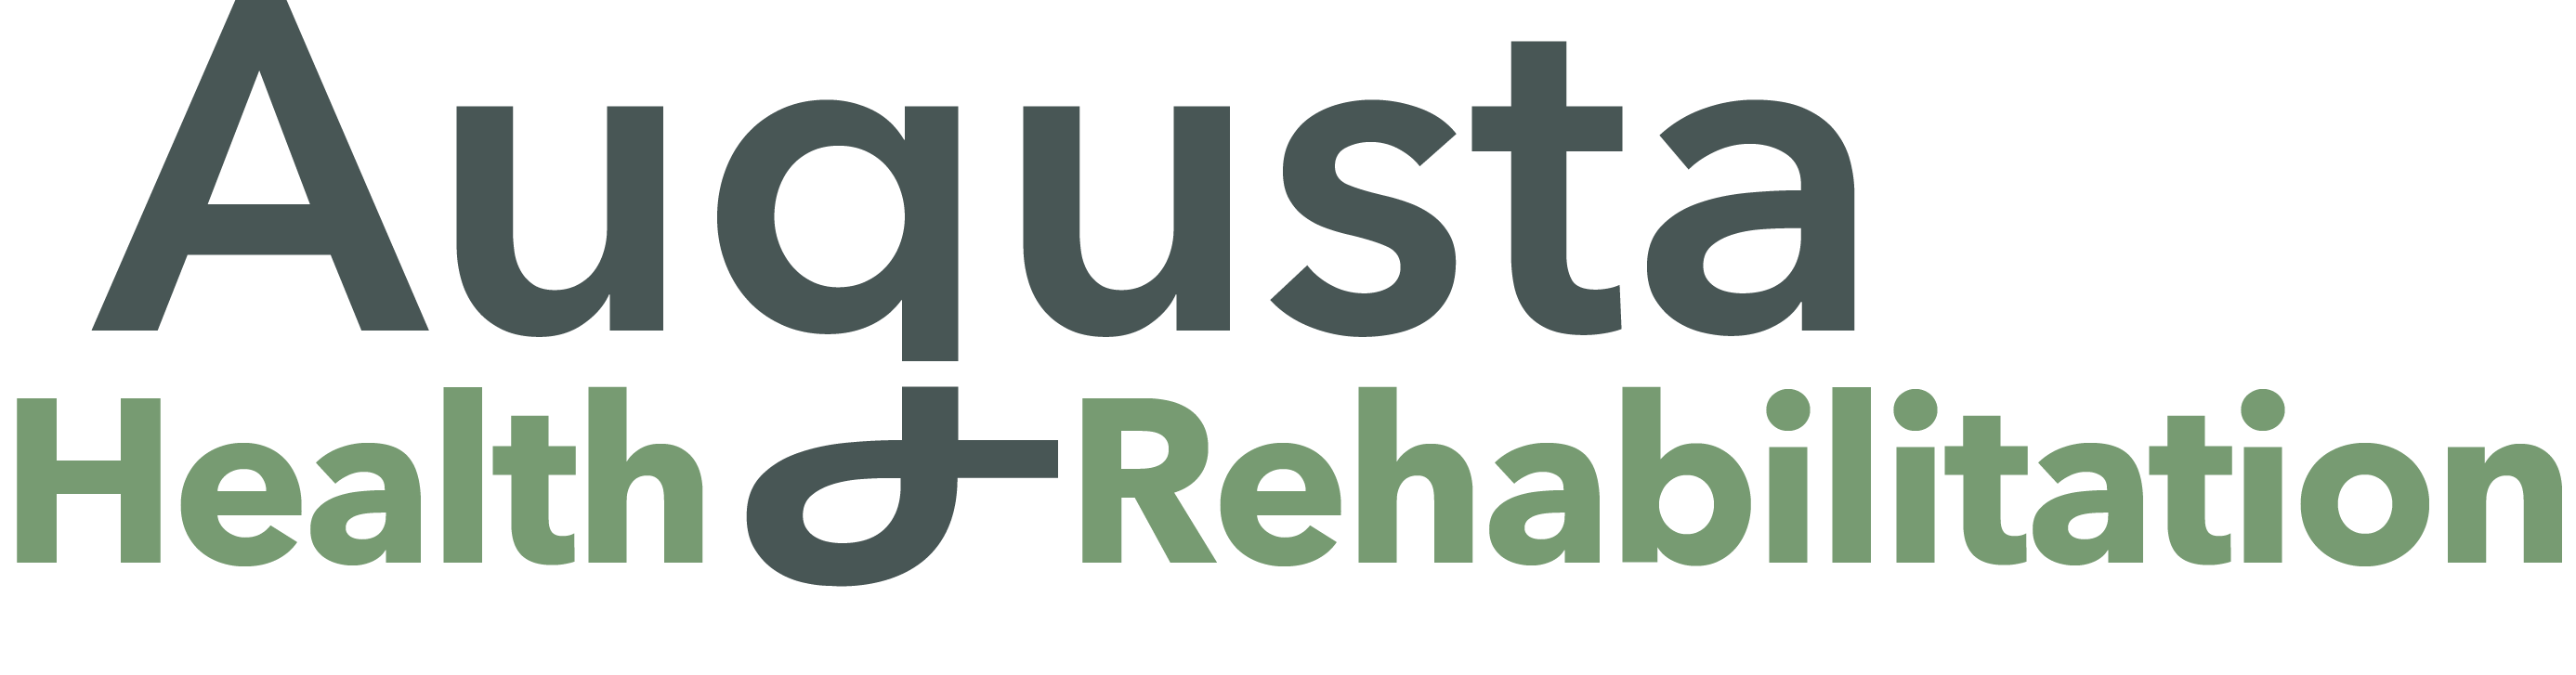 Augusta Health & Rehabilitation